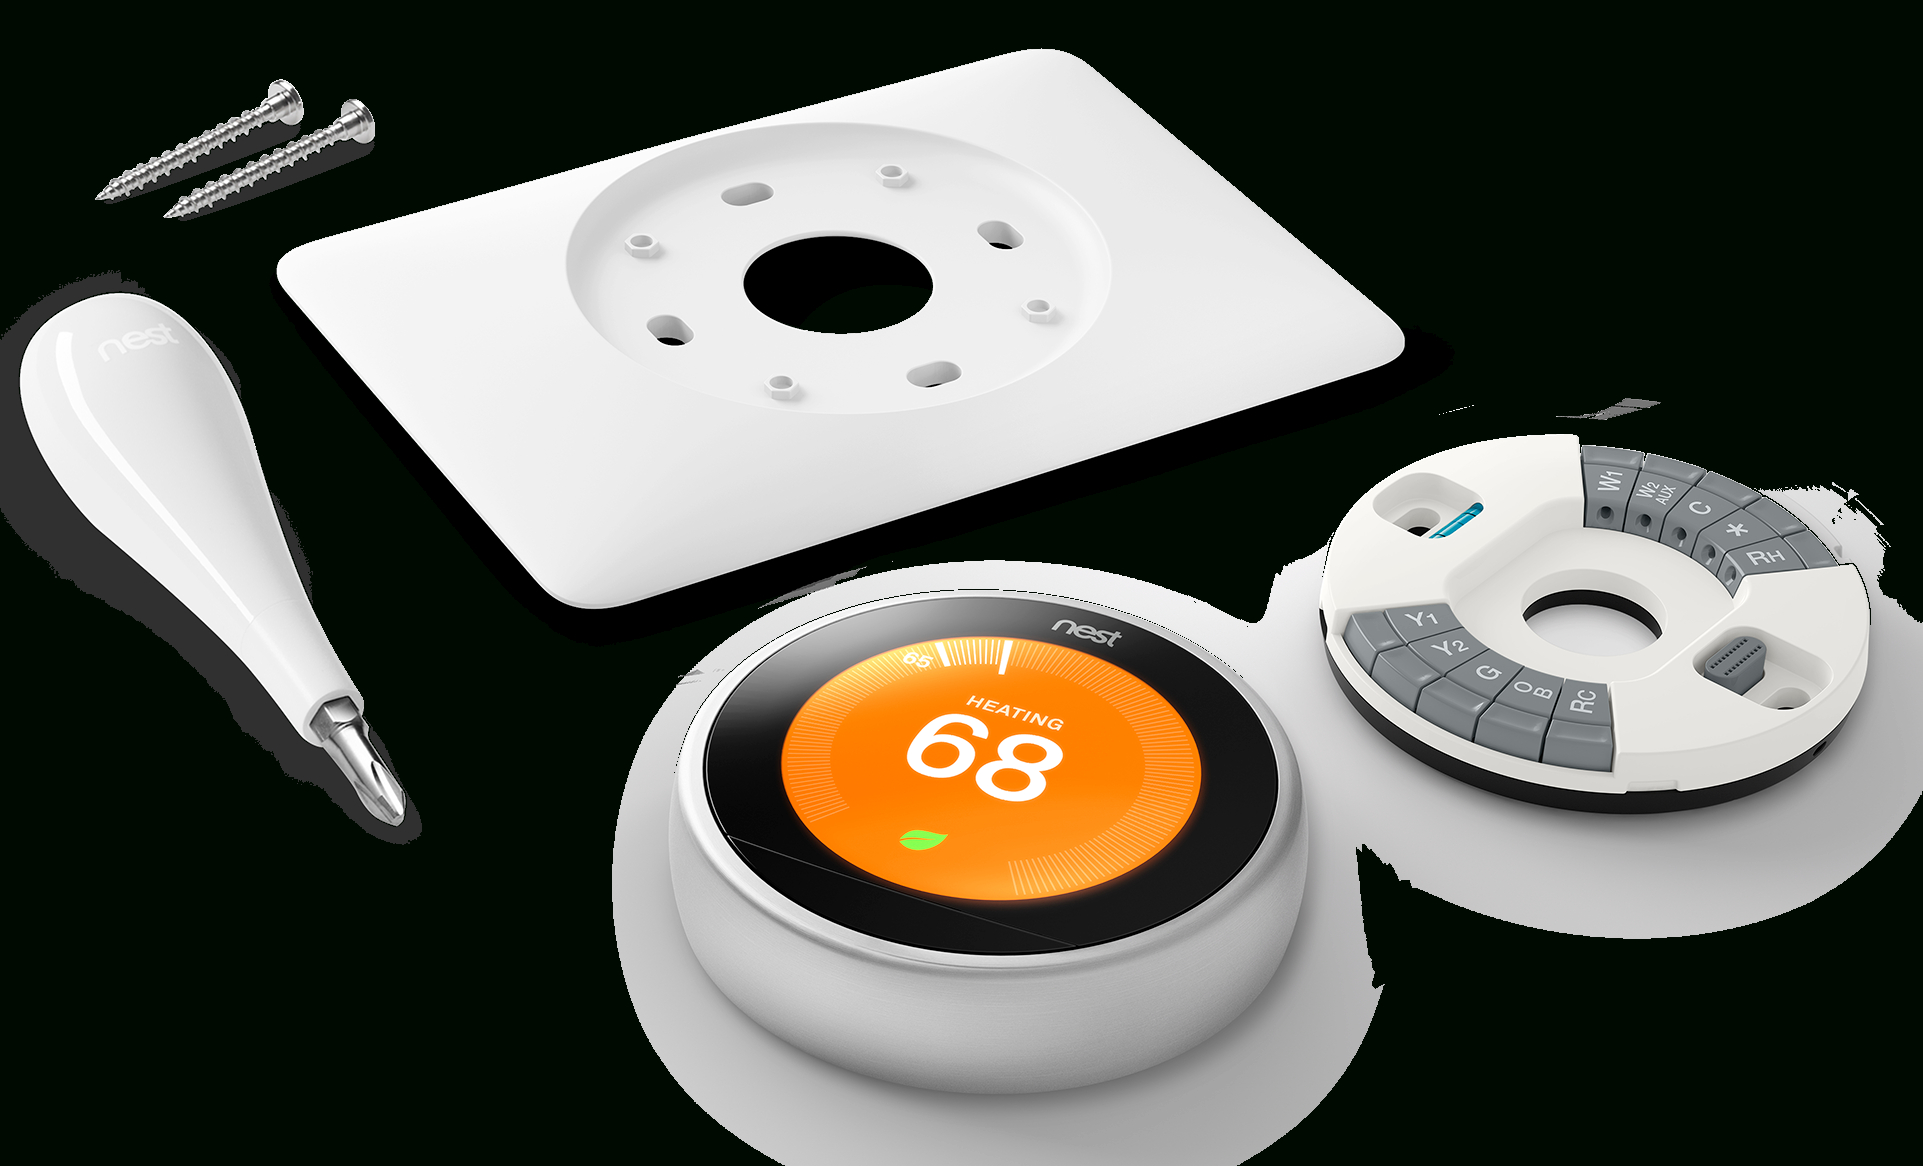 How To Install Your Nest Thermostat - Nest 3Rd Wiring Diagram